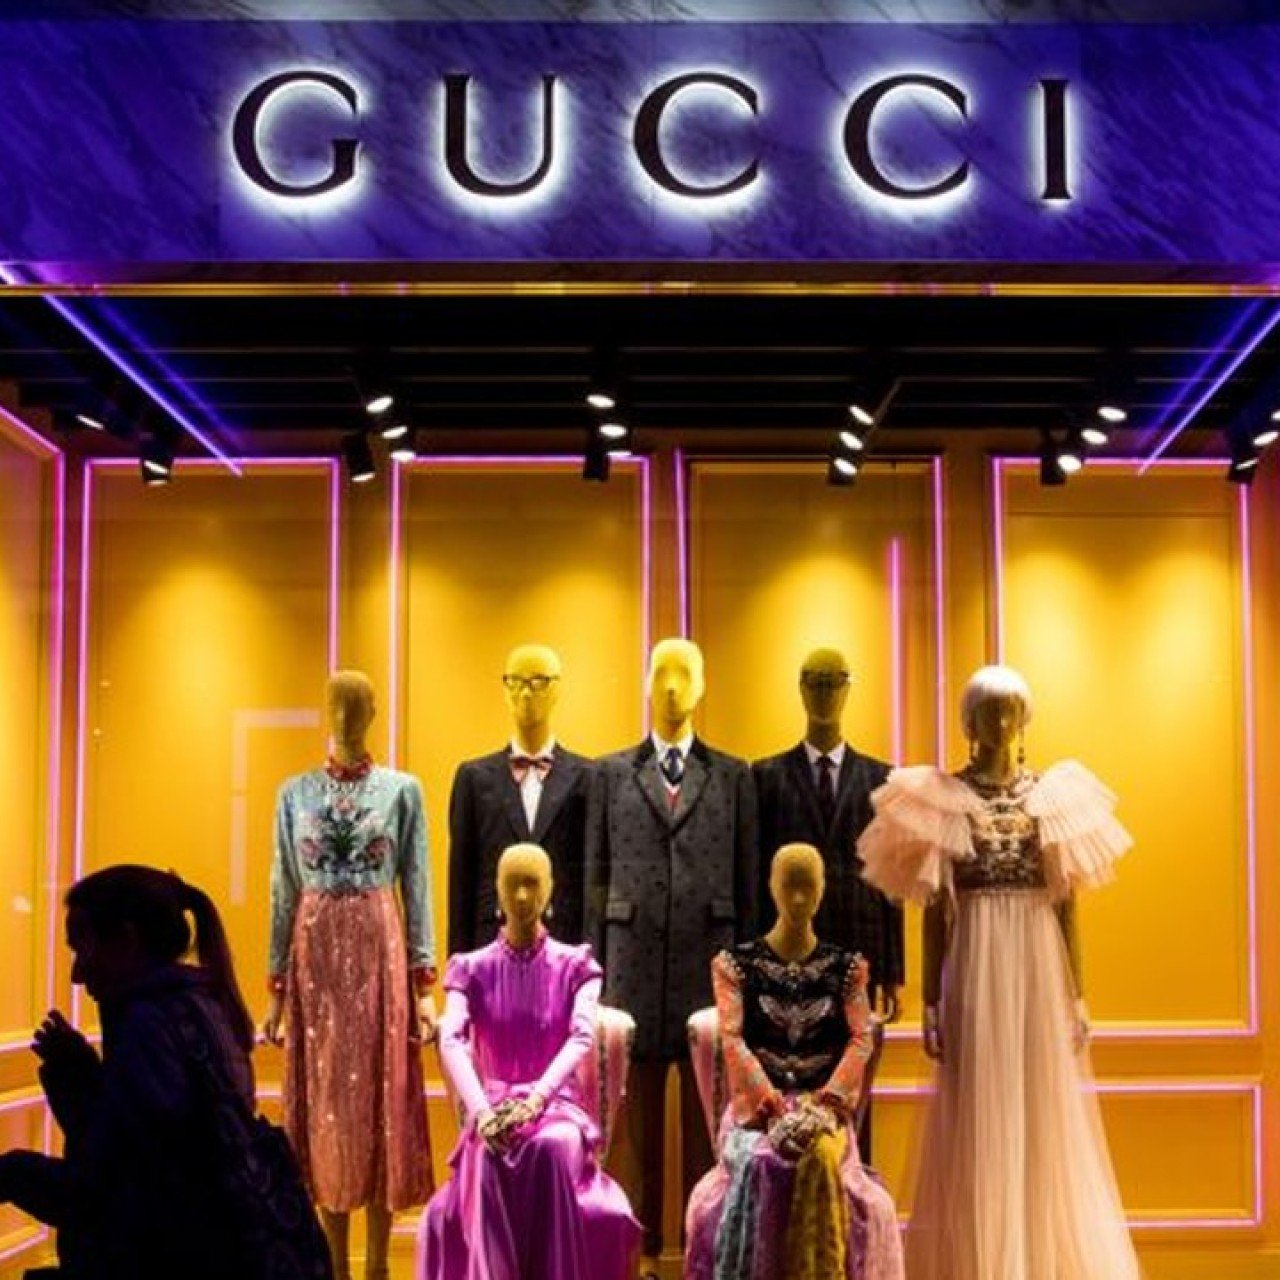 828528f572a Gucci strikes gold in China with 'Moonlight clans' who want to spend all  they earn   South China Morning Post